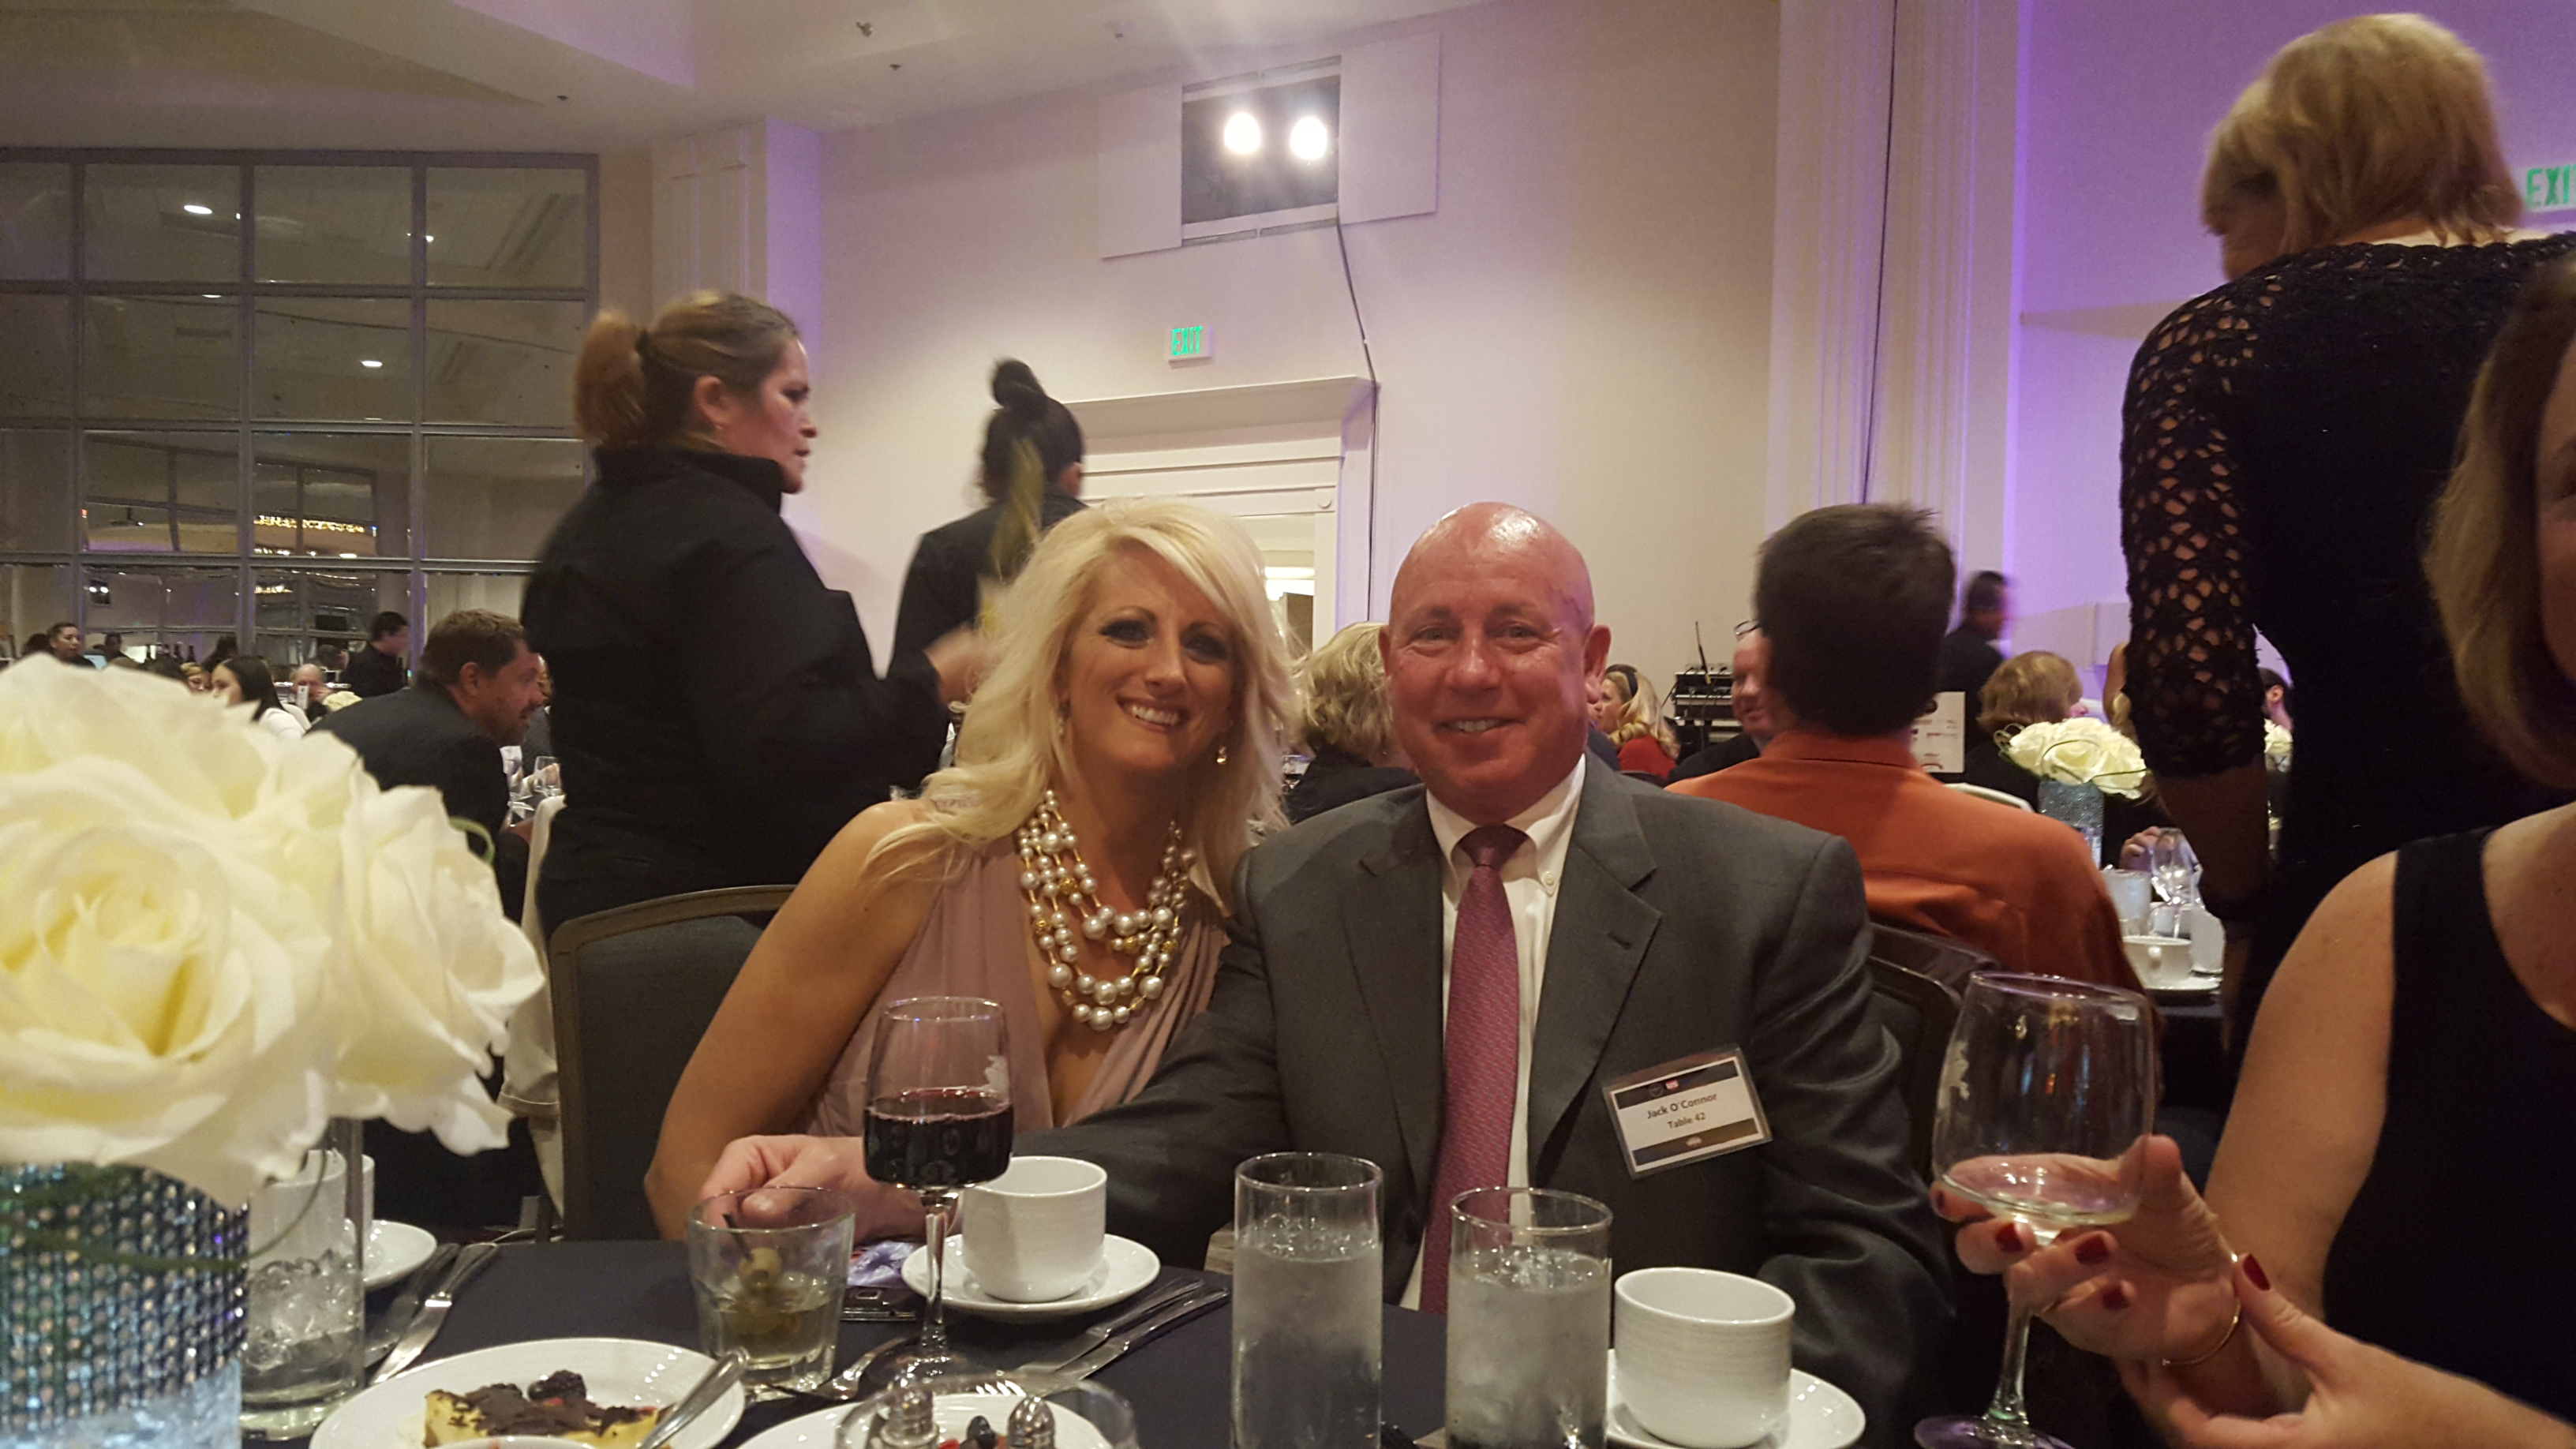 Jack O'Connor, Broker/Owner of The Denver 100 and Kimberly Plauf, Owner of Luxury Moving Services